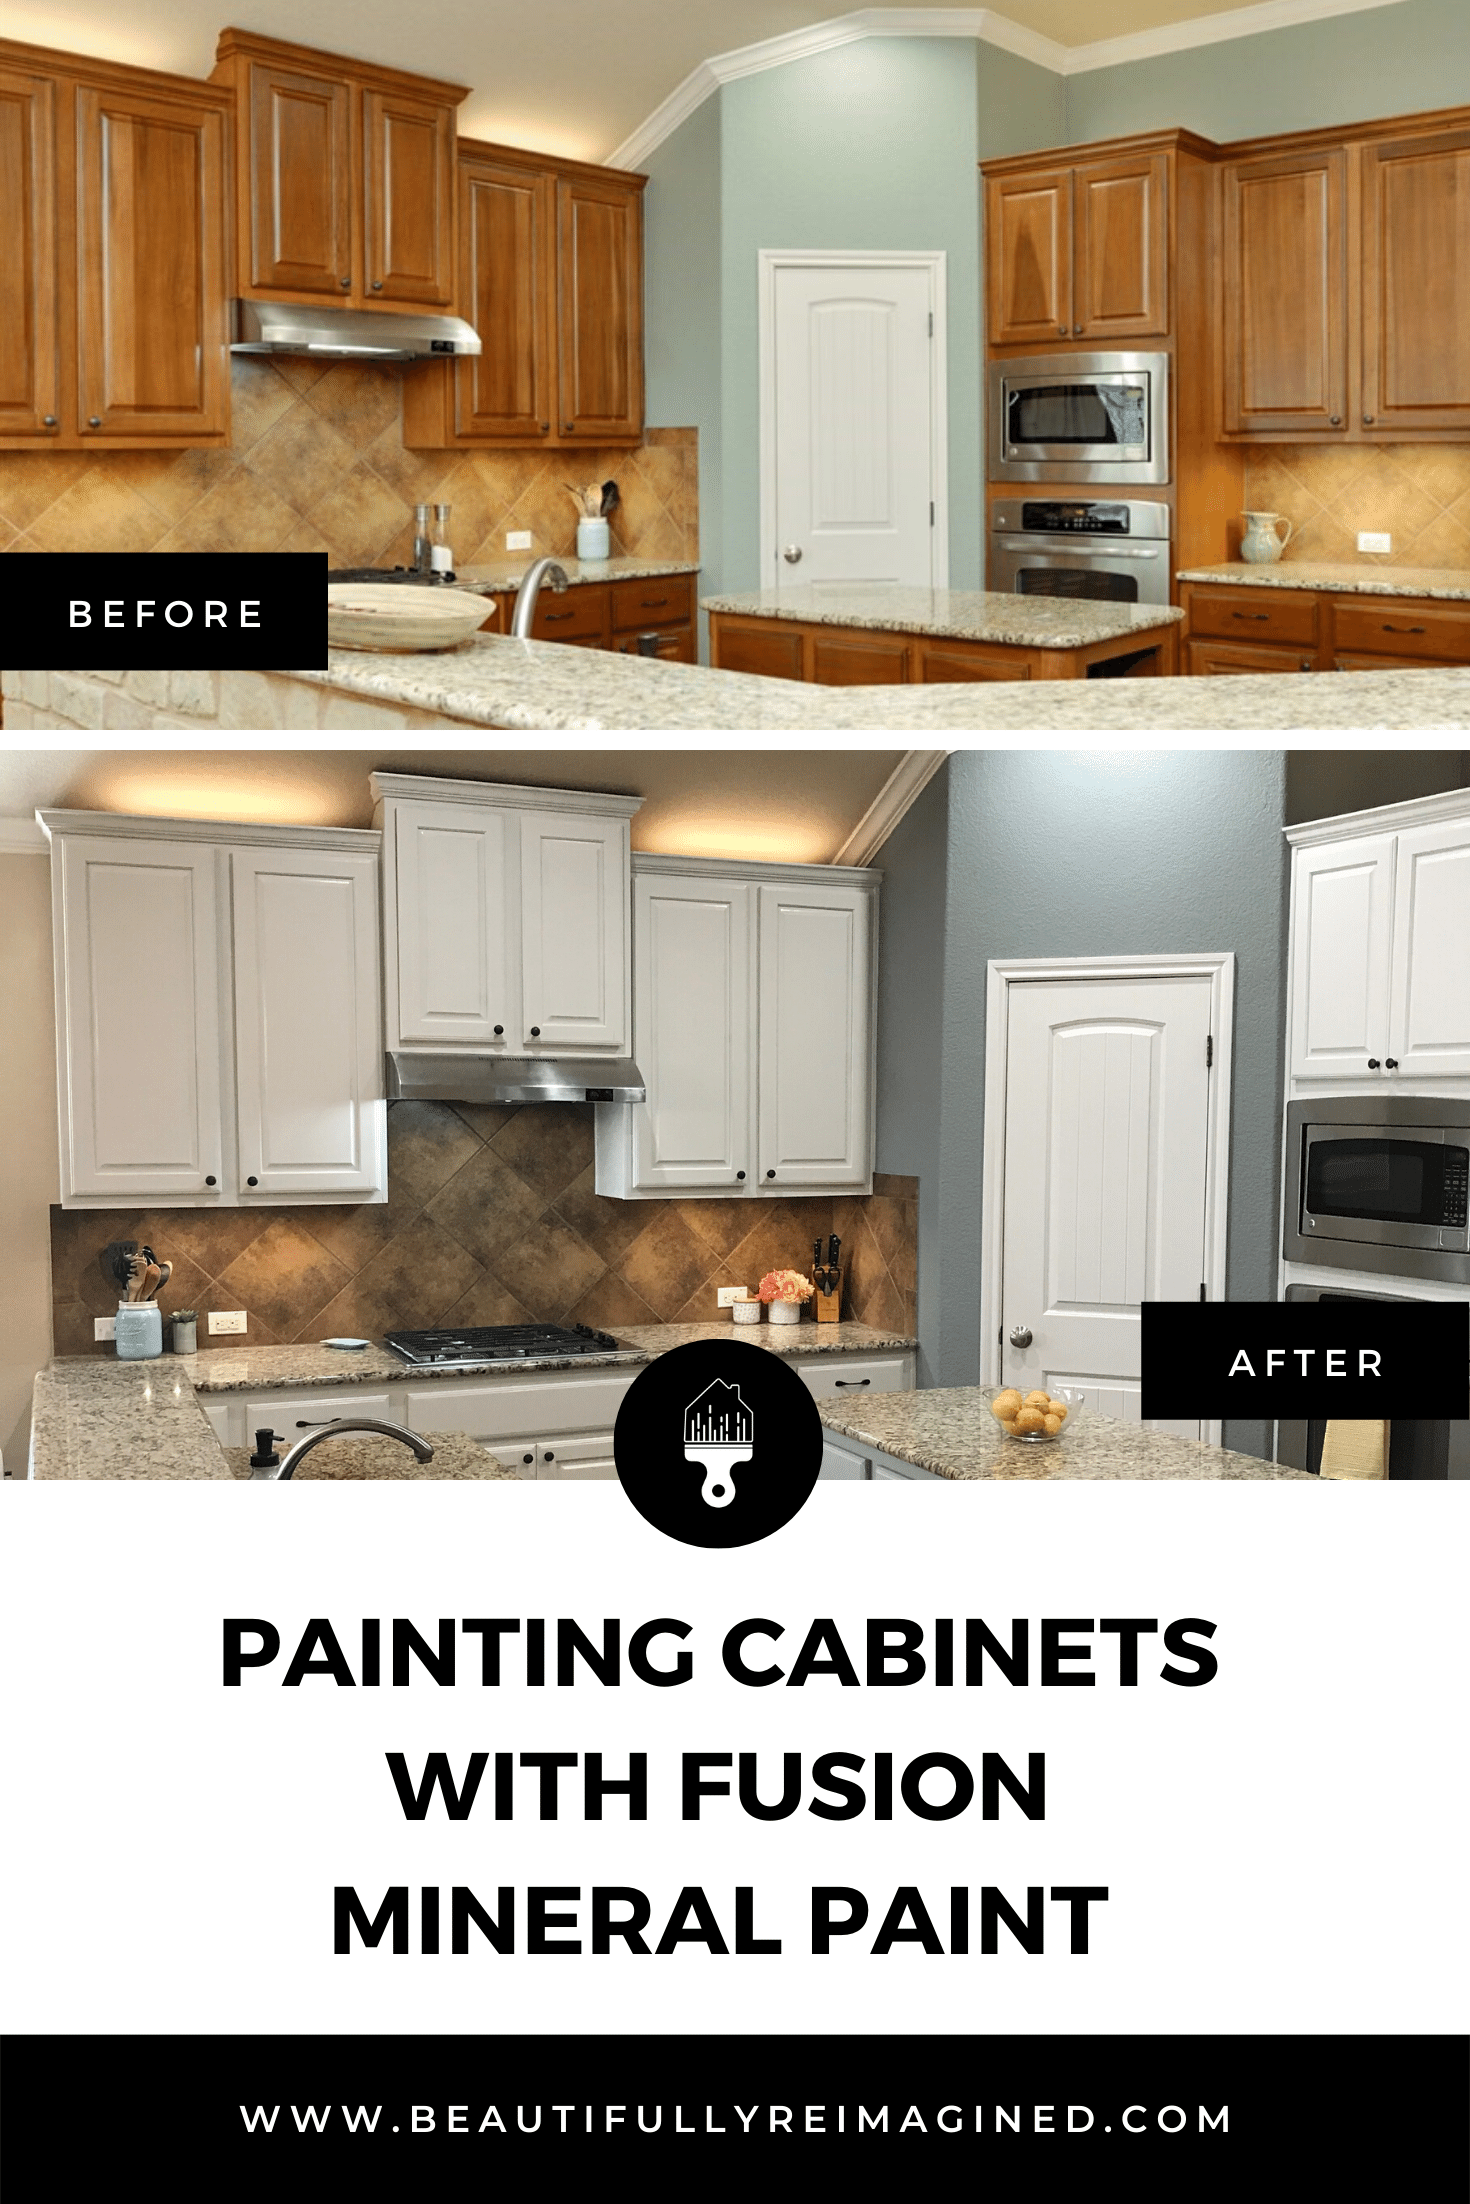 Painting Cabinets With Fusion Mineral Paint Beautifully Reimagined Painting Cabinets Fusion Mineral Paint Outdoor Kitchen Design